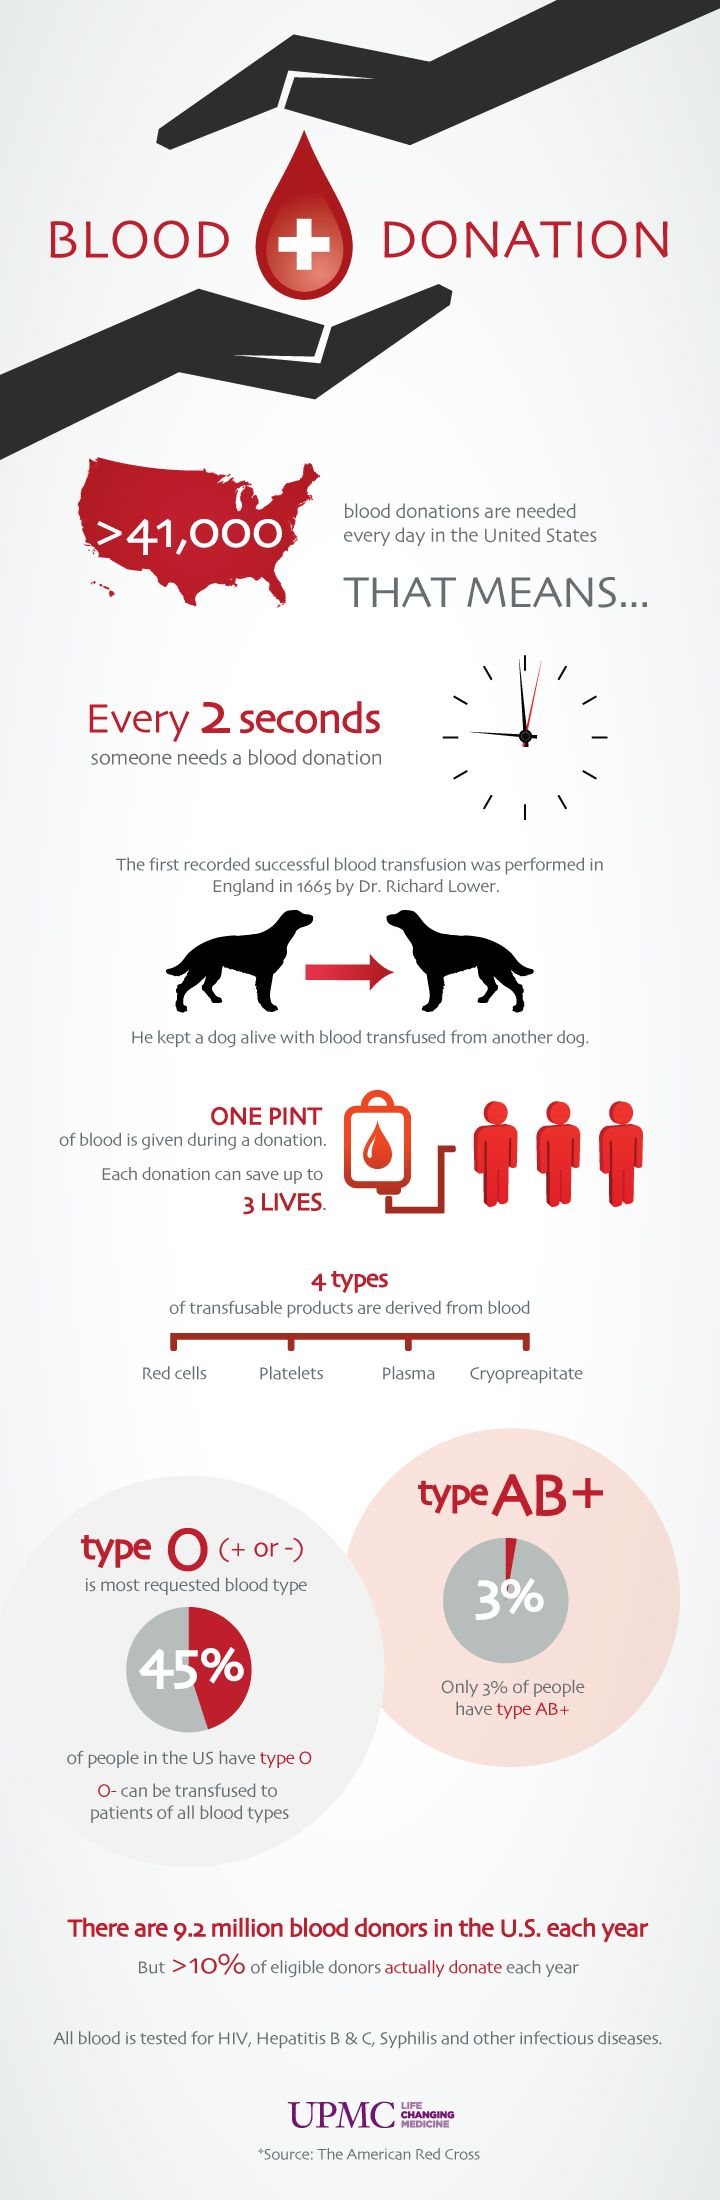 best ideas about blood donation blood donation infographic every 2 seconds someone in the united states needs a blood donation did